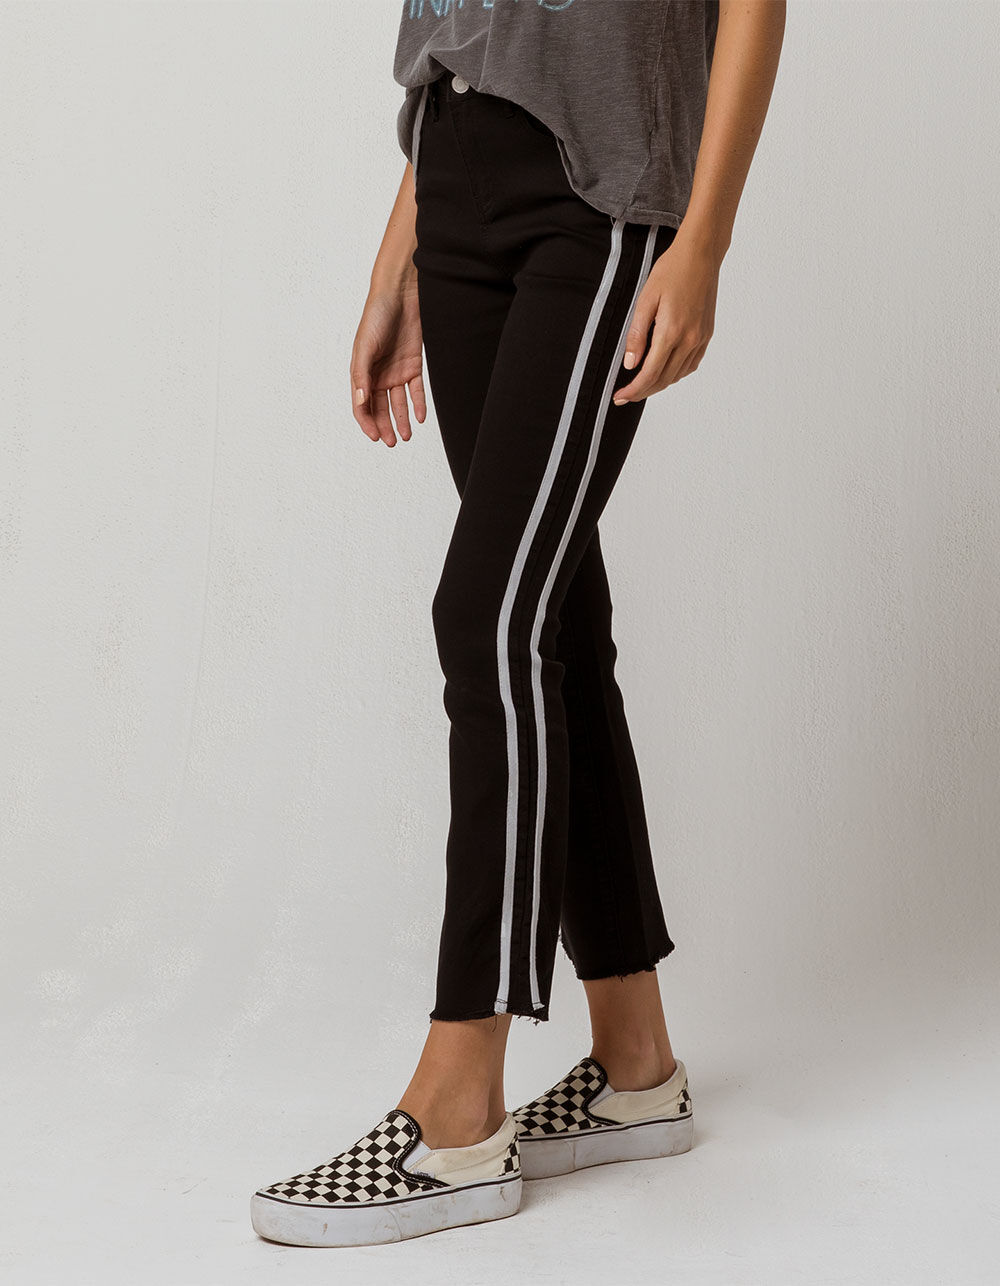 SKY AND SPARROW Side Stripe Crop Flare Jeans